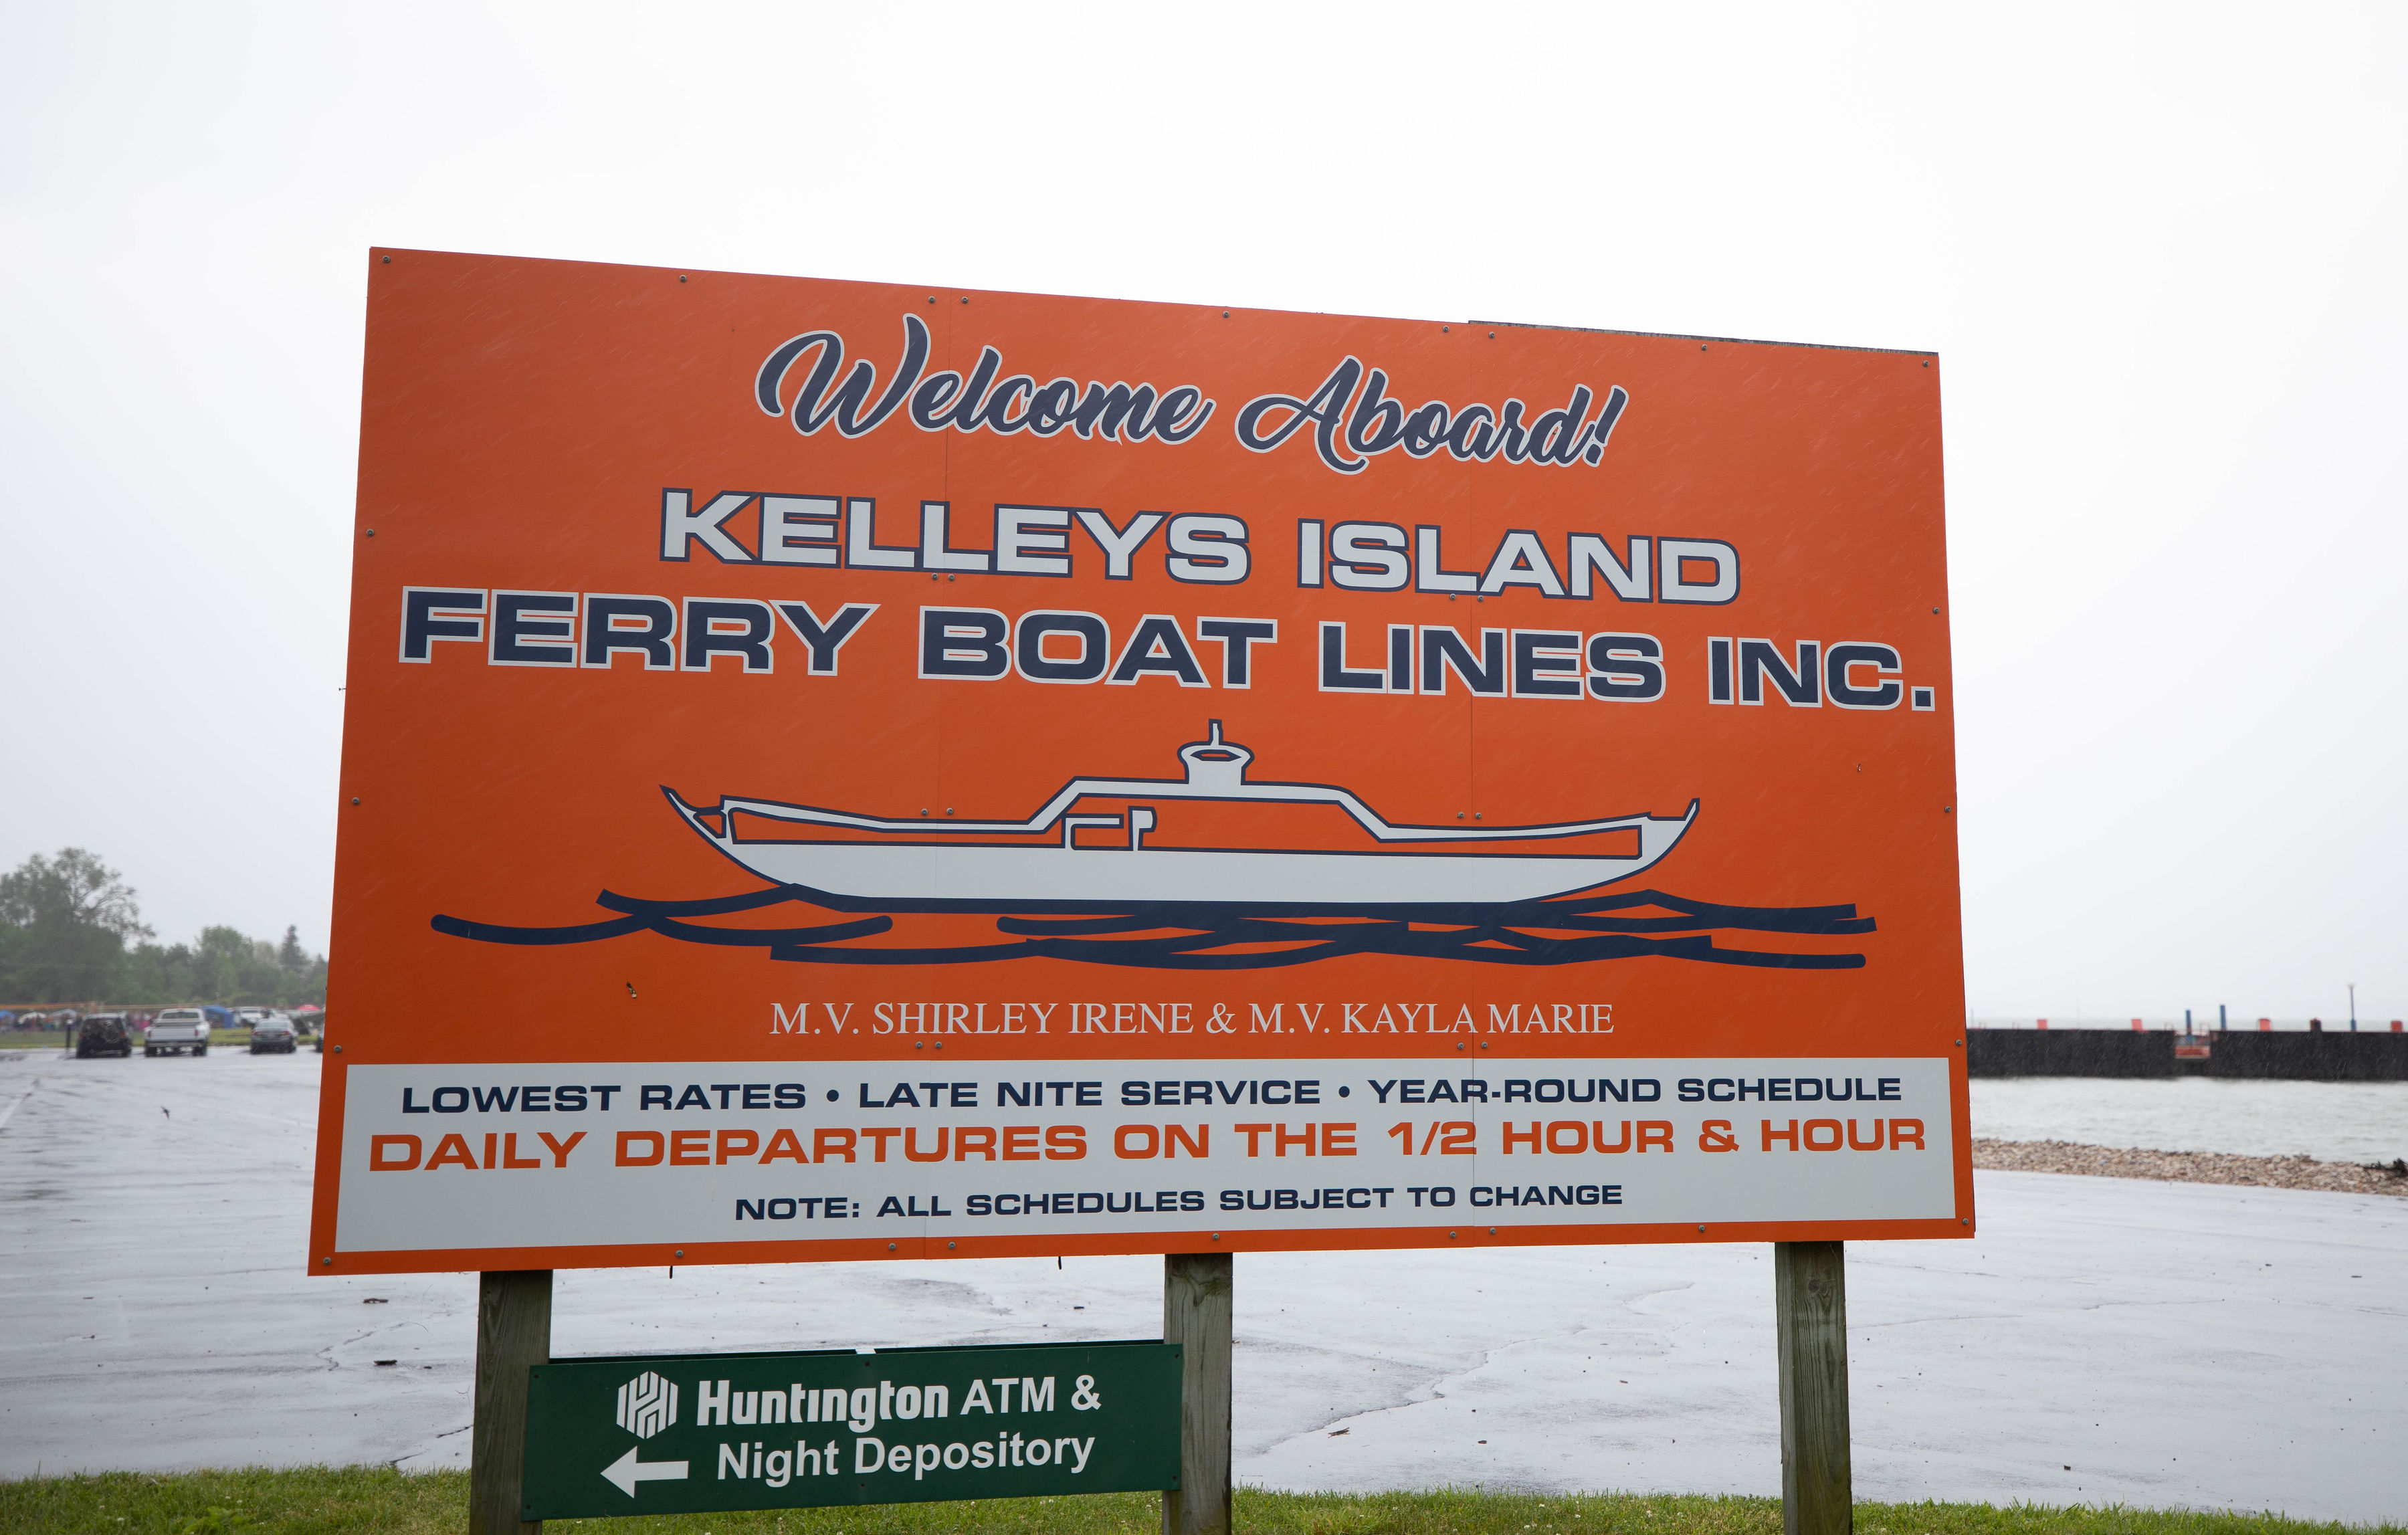 Kelleys Island The Official Travel Guide by Annie Fairfax What to Do on Kelleys Island, Ohio